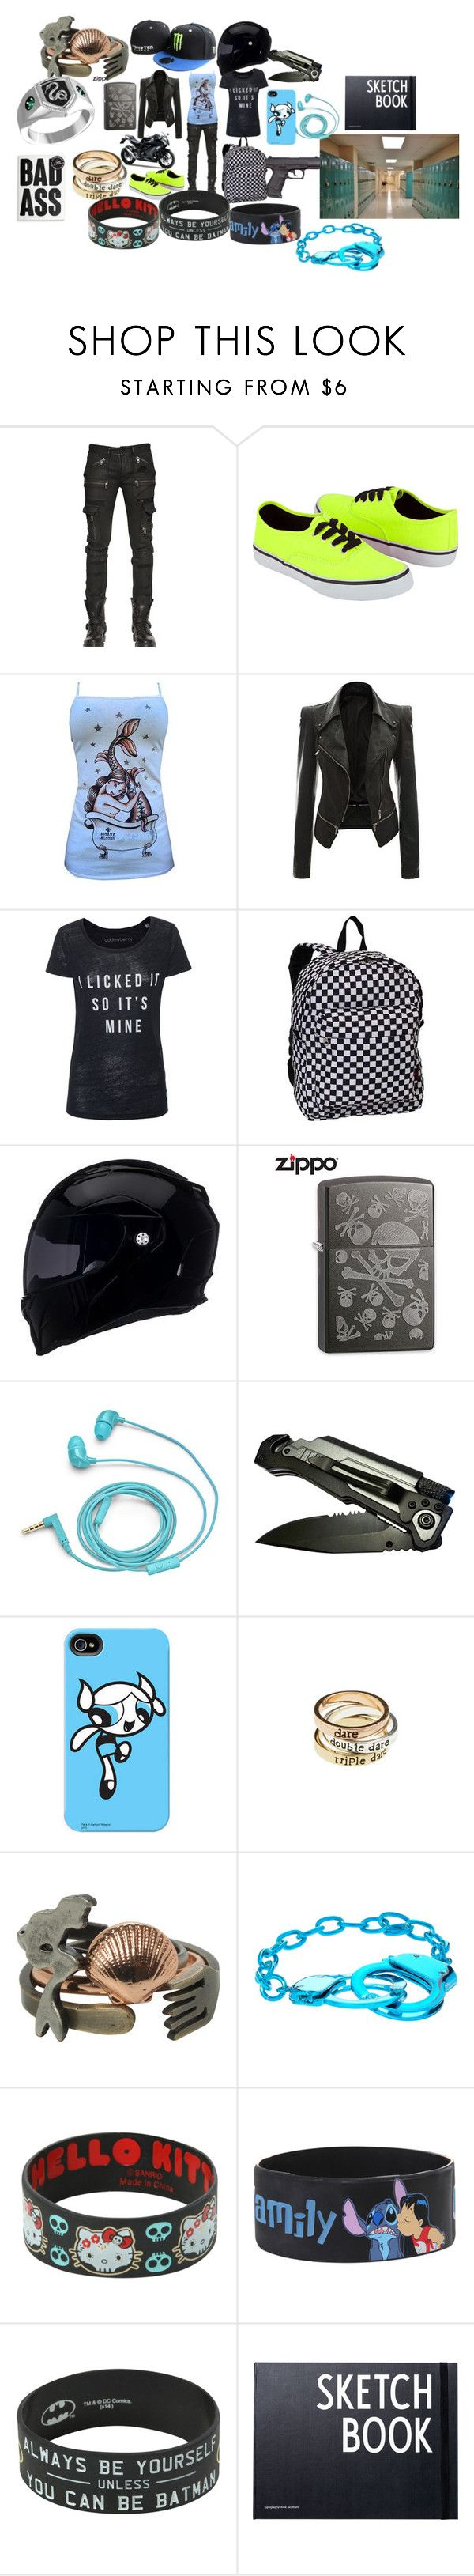 """""""School With The Skateboarder."""" by circus-queen ❤ liked on Polyvore featuring Diesel Black Gold, Soda, Everest, Kawasaki, Revolver, Zippo, FOSSIL, New Era, American Eagle Outfitters and Disney"""